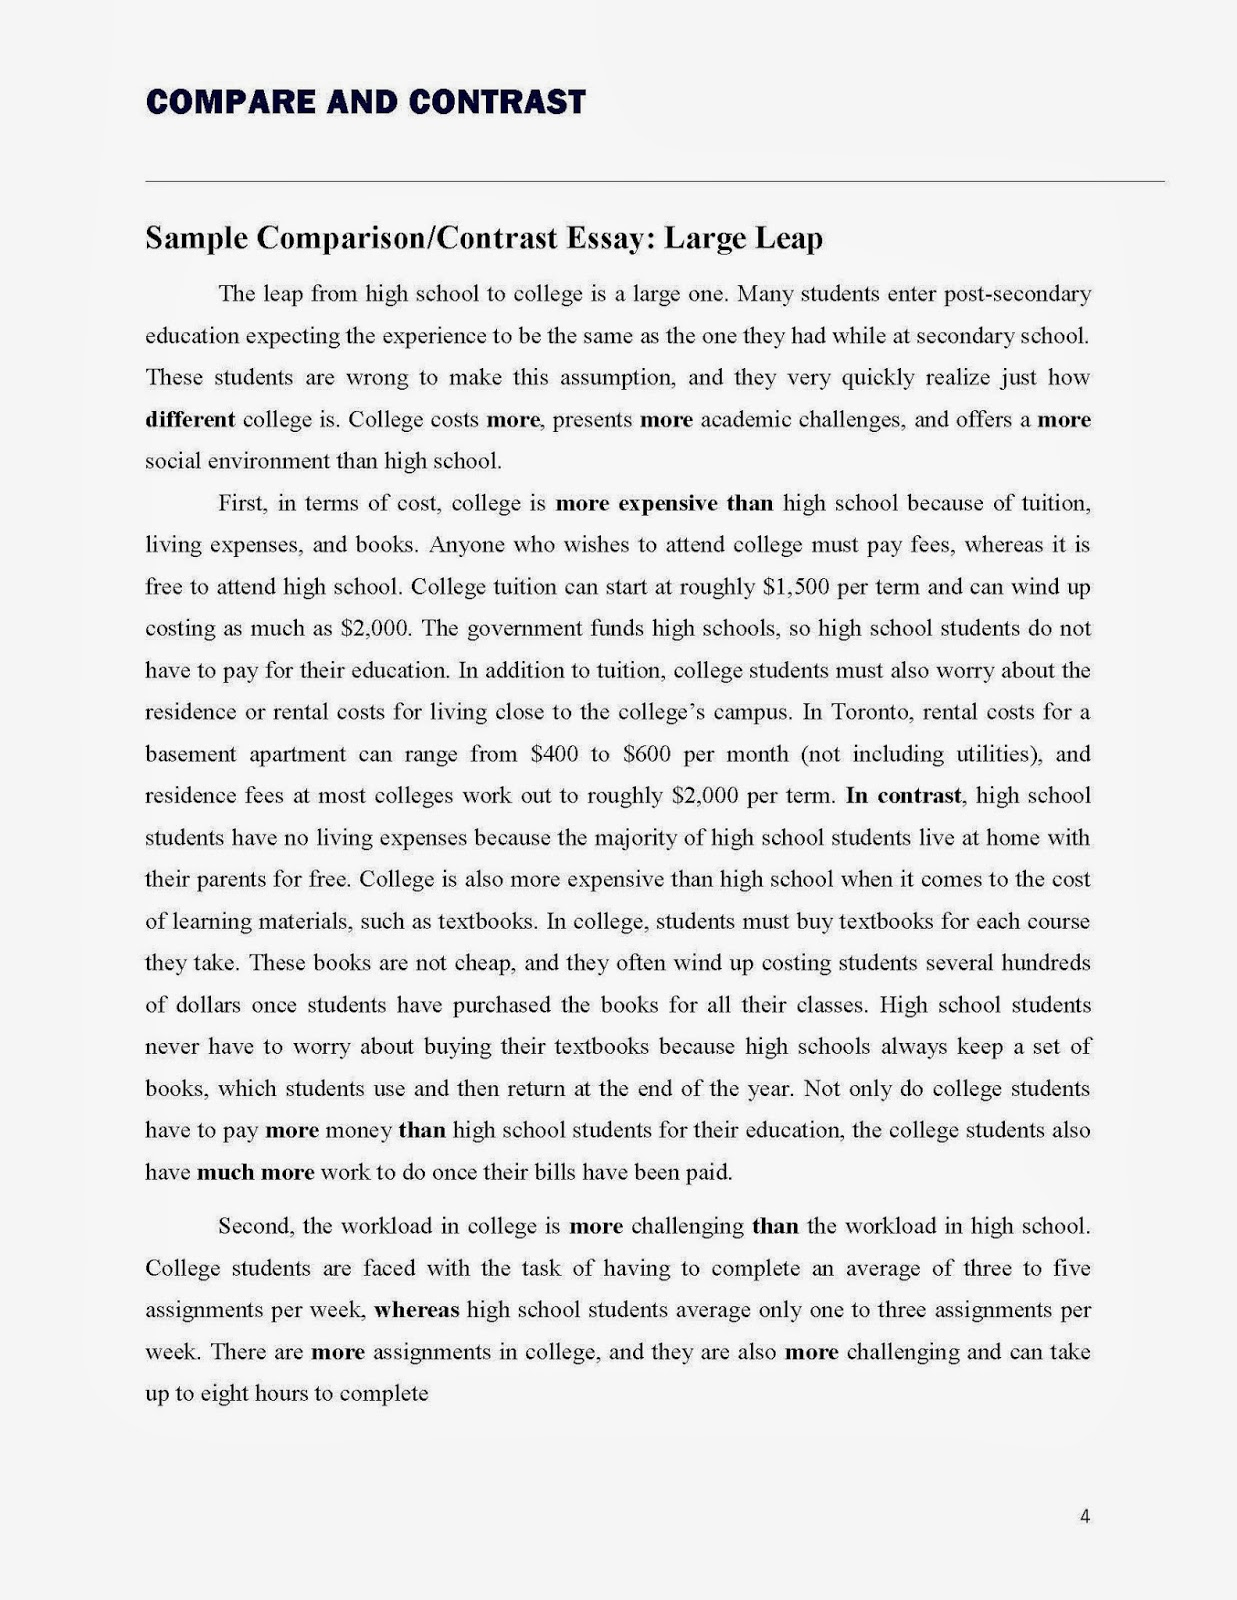 011 Compare And Contrast Essay Compareandcontrastessay Page 4h125 Frightening Introduction Paragraph Topics About Love Outline Example Full